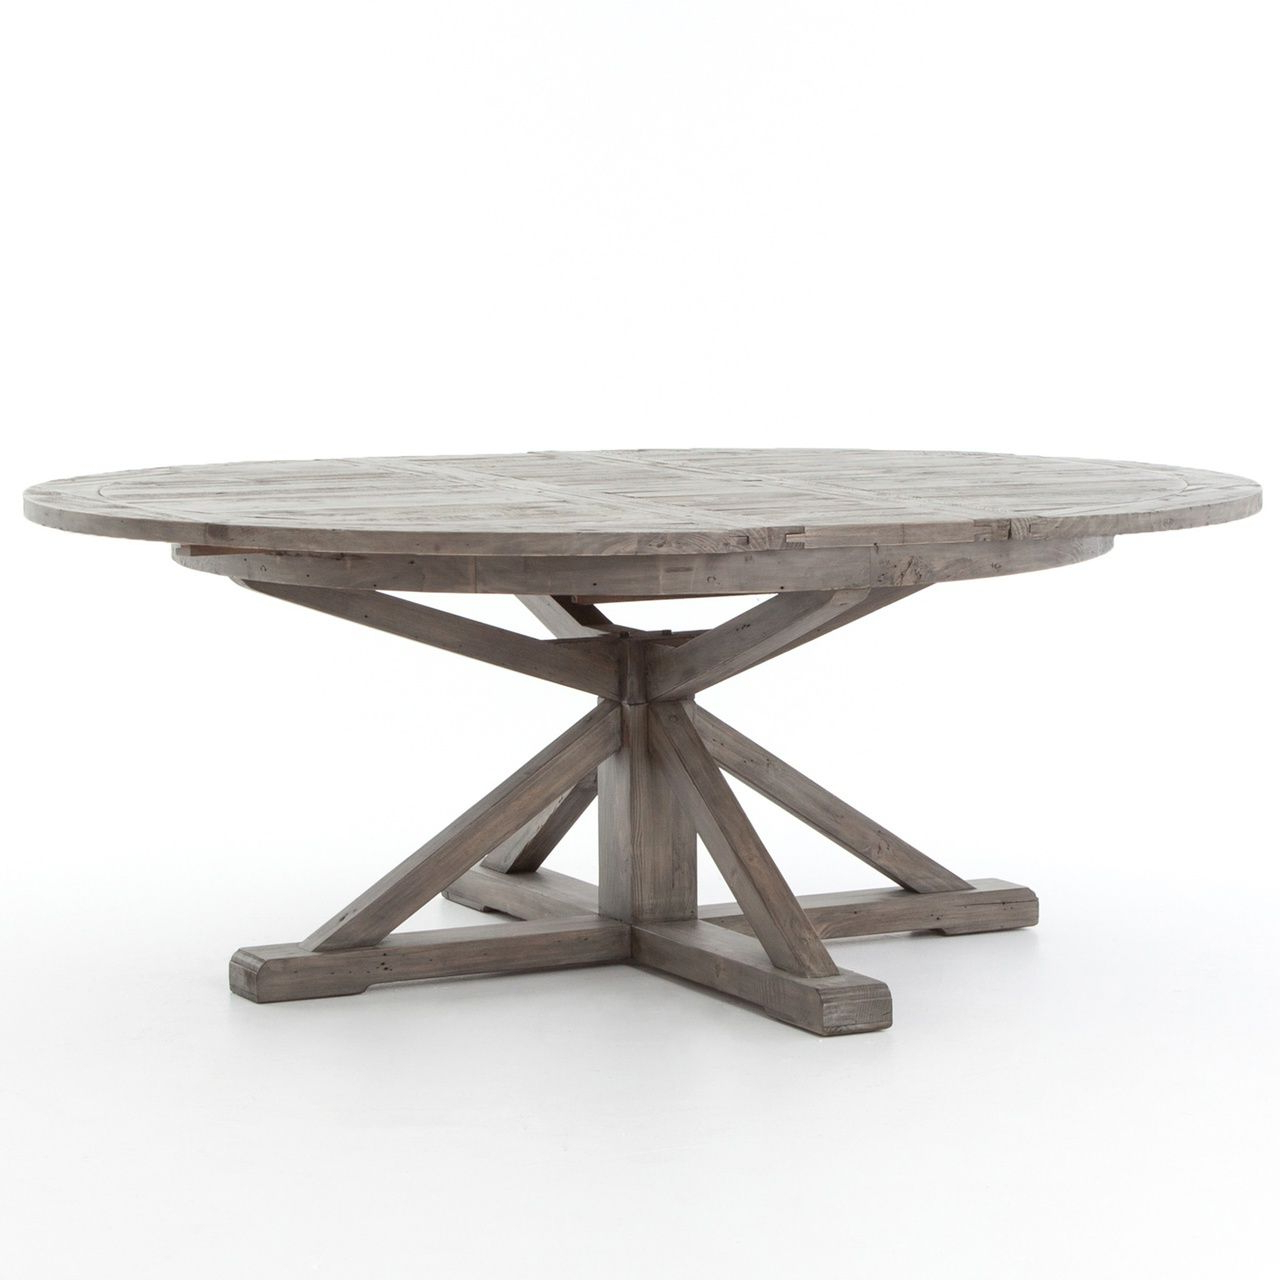 "Best and Newest Cintra Reclaimed Wood Extending Round Dining Table 63""- Gray within Driftwood White Hart Reclaimed Pedestal Extending Dining Tables"